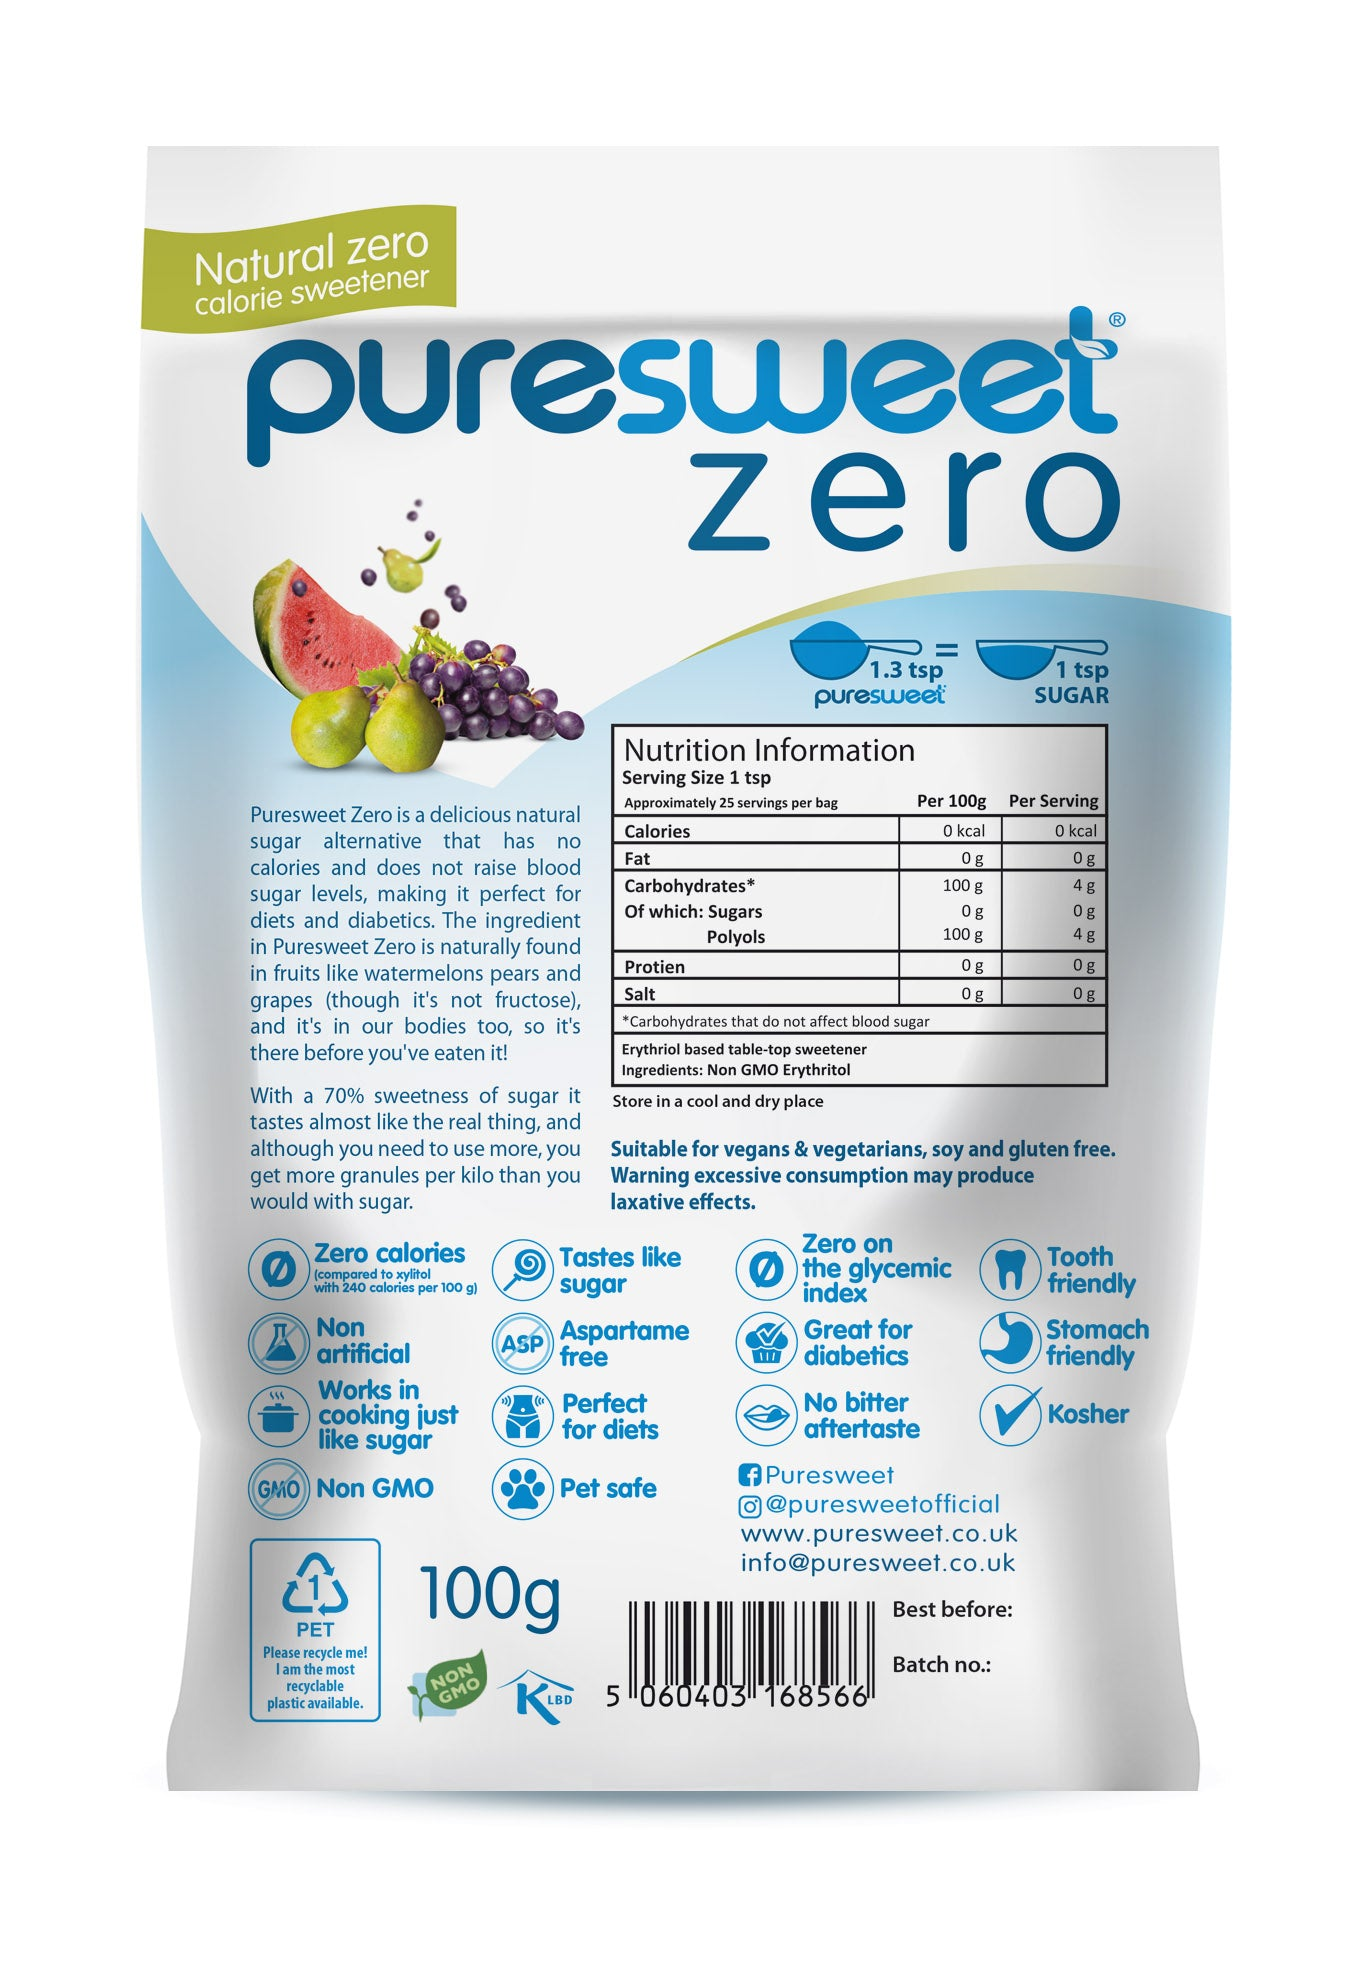 Puresweet Zero® 100% Natural Zero Calorie Sweetener 1kg, No bitter aftertaste, Diabetic Friendly, Tooth Friendly, Vegan, Non GMO.